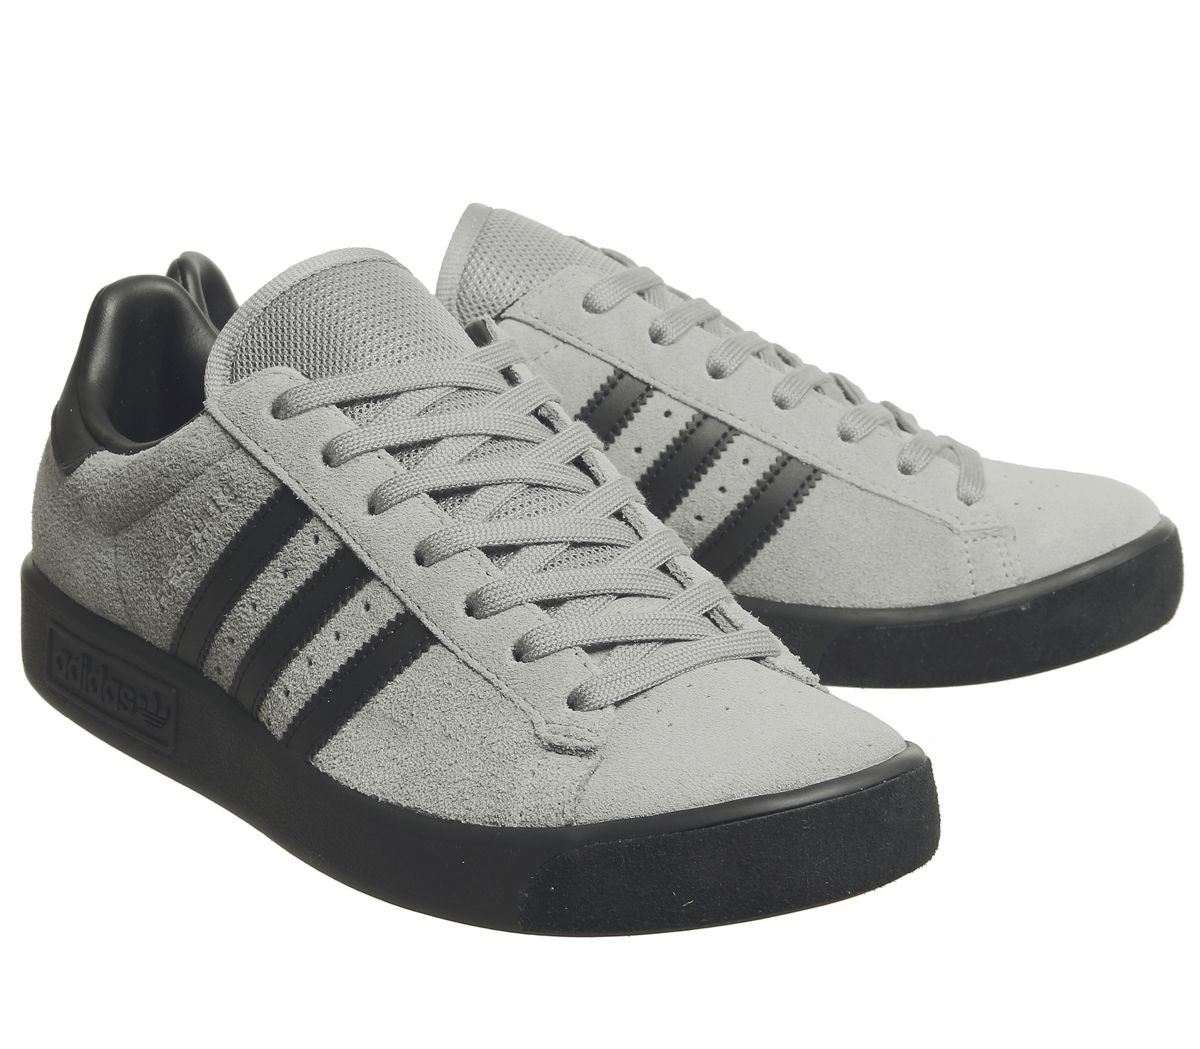 Mens-Adidas-Forest-Hills-Trainers-Grey-Three-Core-Black-Exclusive-Trainers-Shoes thumbnail 7